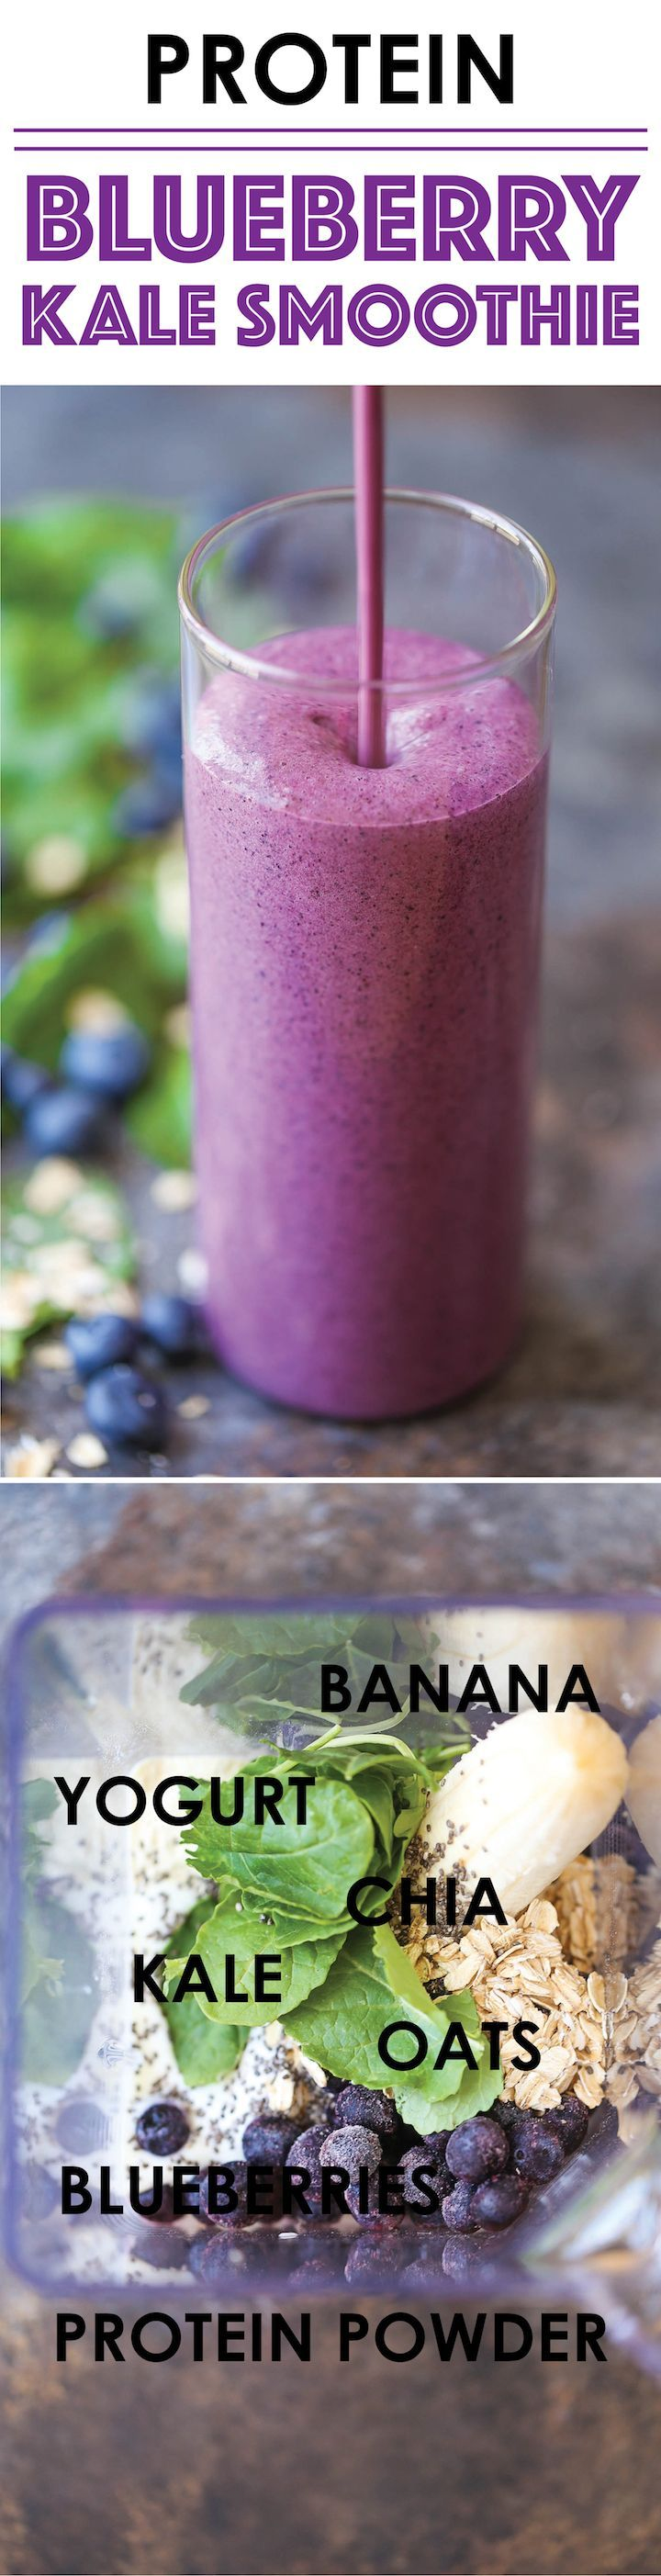 kale blueberry smoothie weight loss